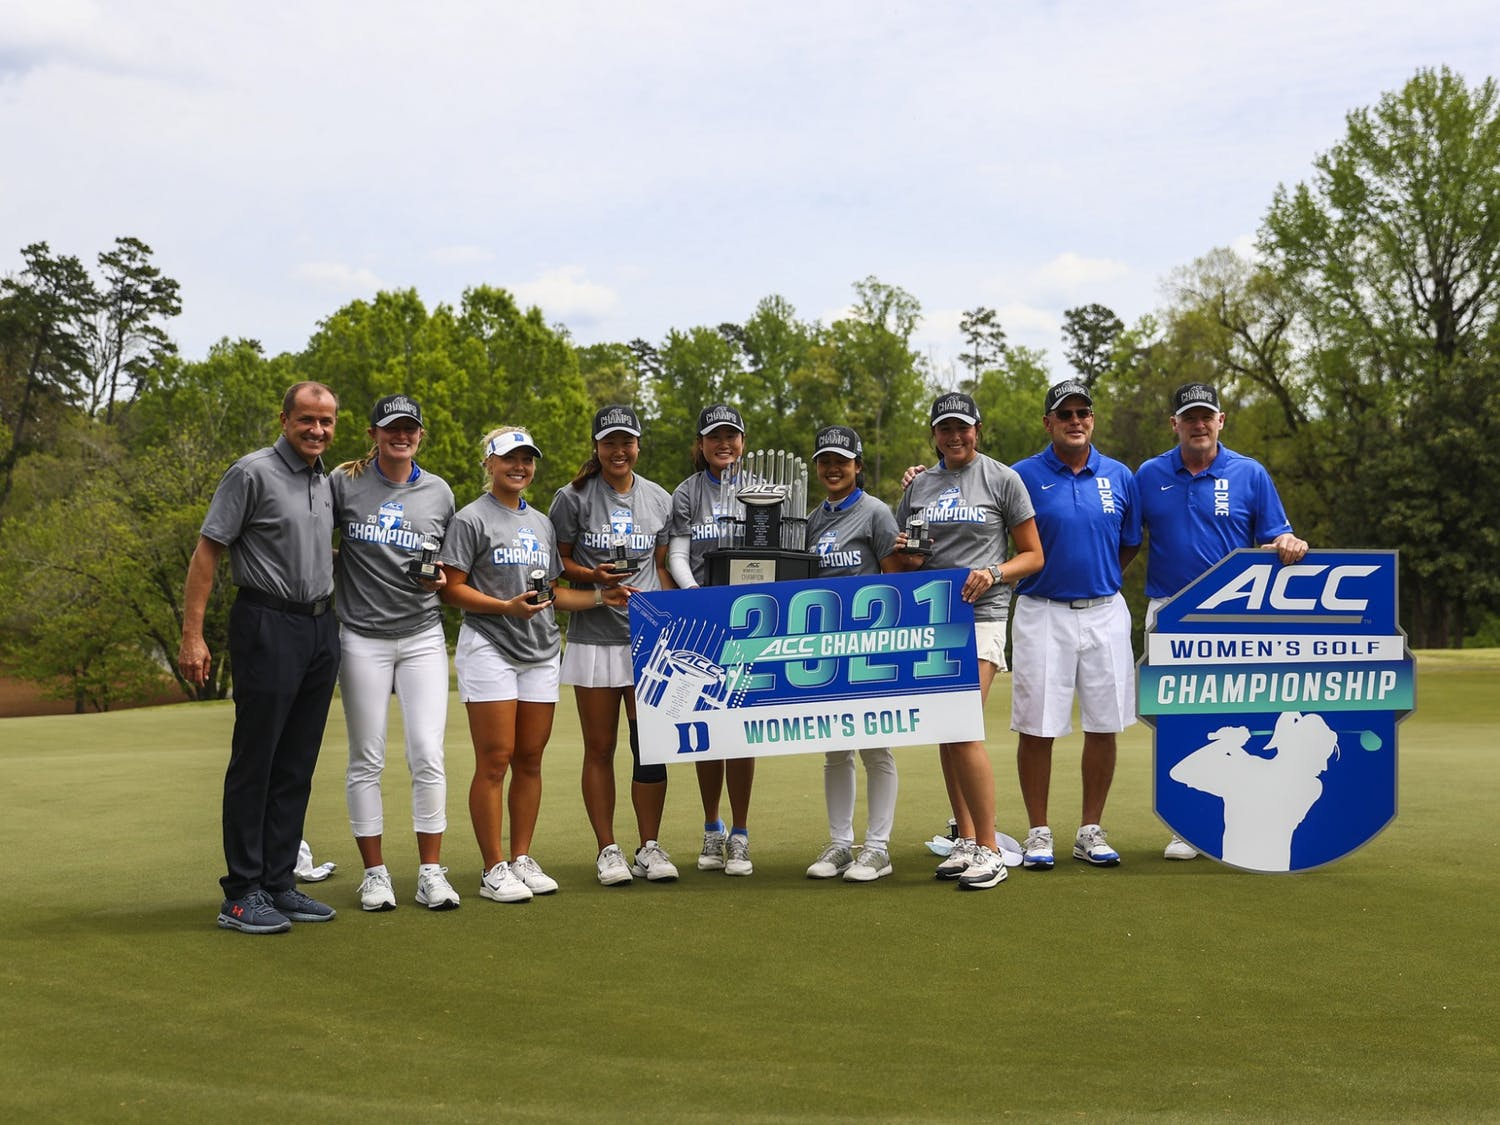 The Blue Devils swept No. 3 seed Florida State to seal their 22nd ACC Championship in program history.